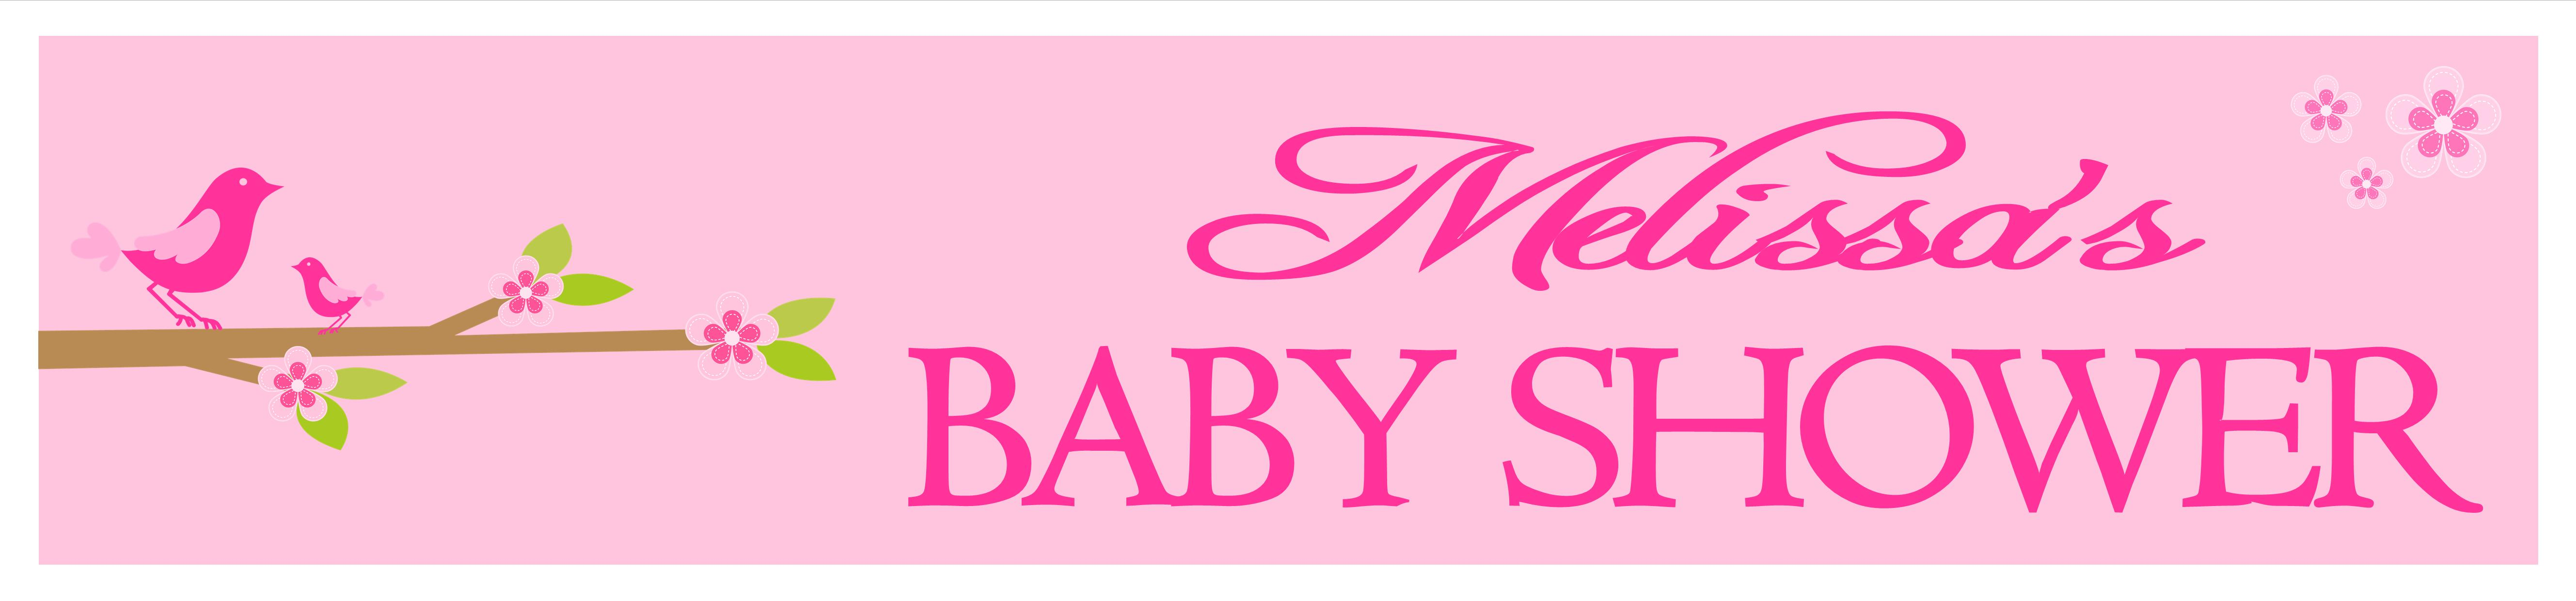 personalised pink baby shower banner design 6